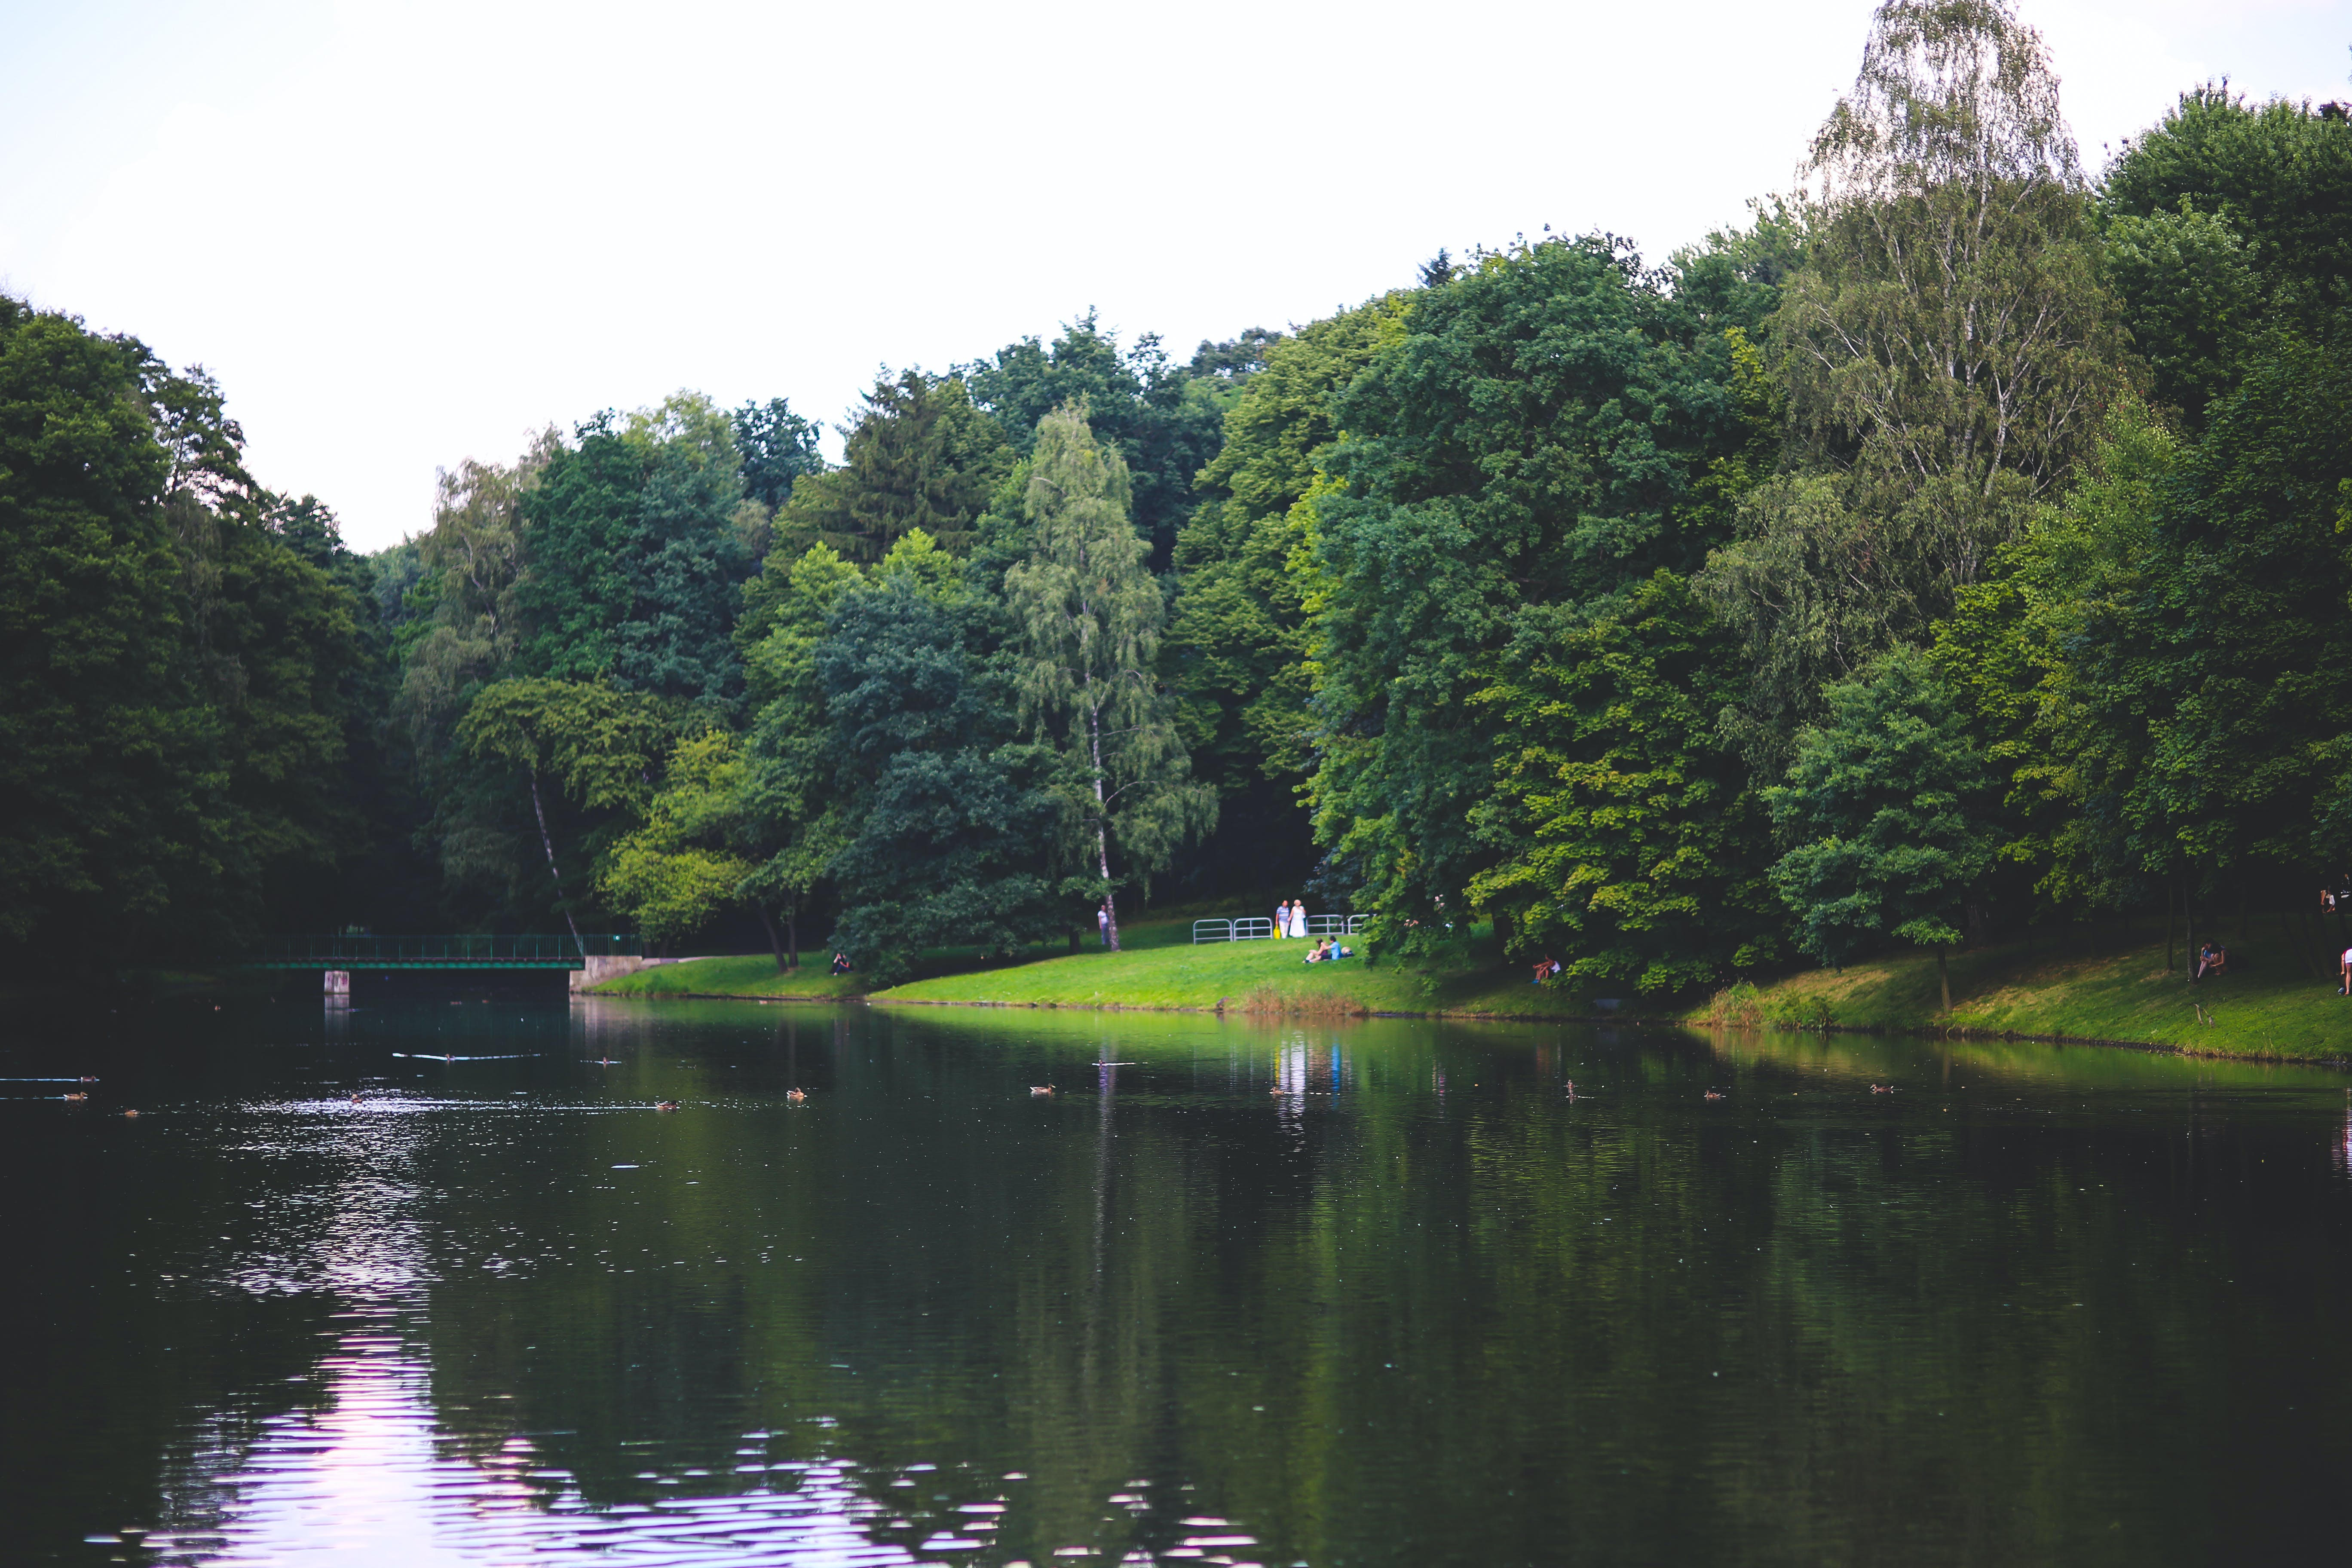 The river in the park